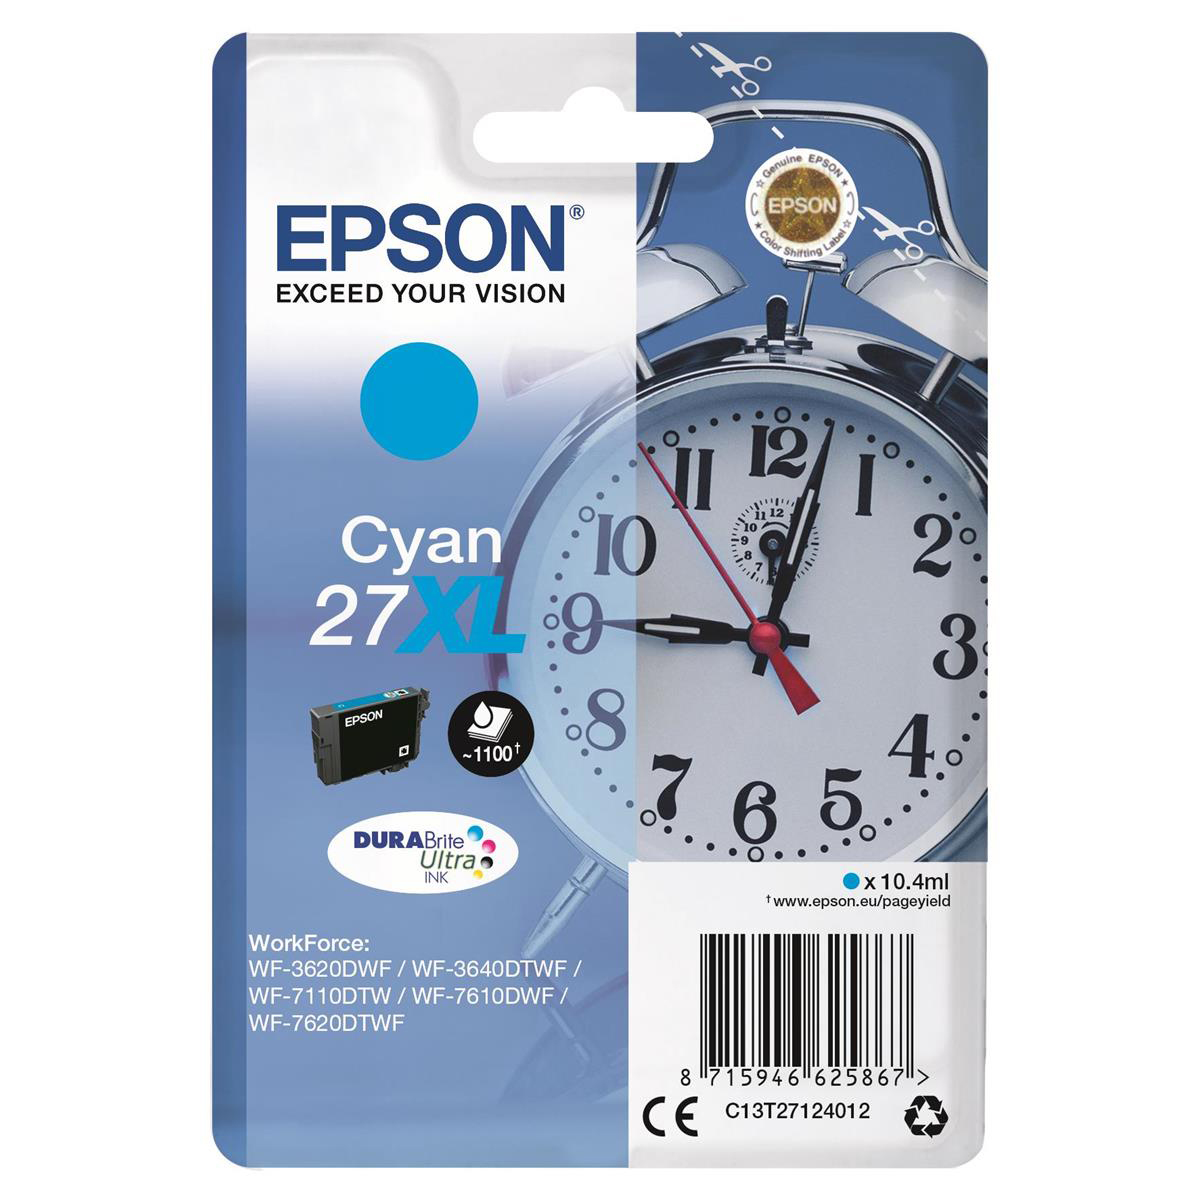 Epson 27XL Inkjet Cartridge Alarm Clock High Yield Page Life 1100pp 10.4ml Cyan Ref C13T27124012